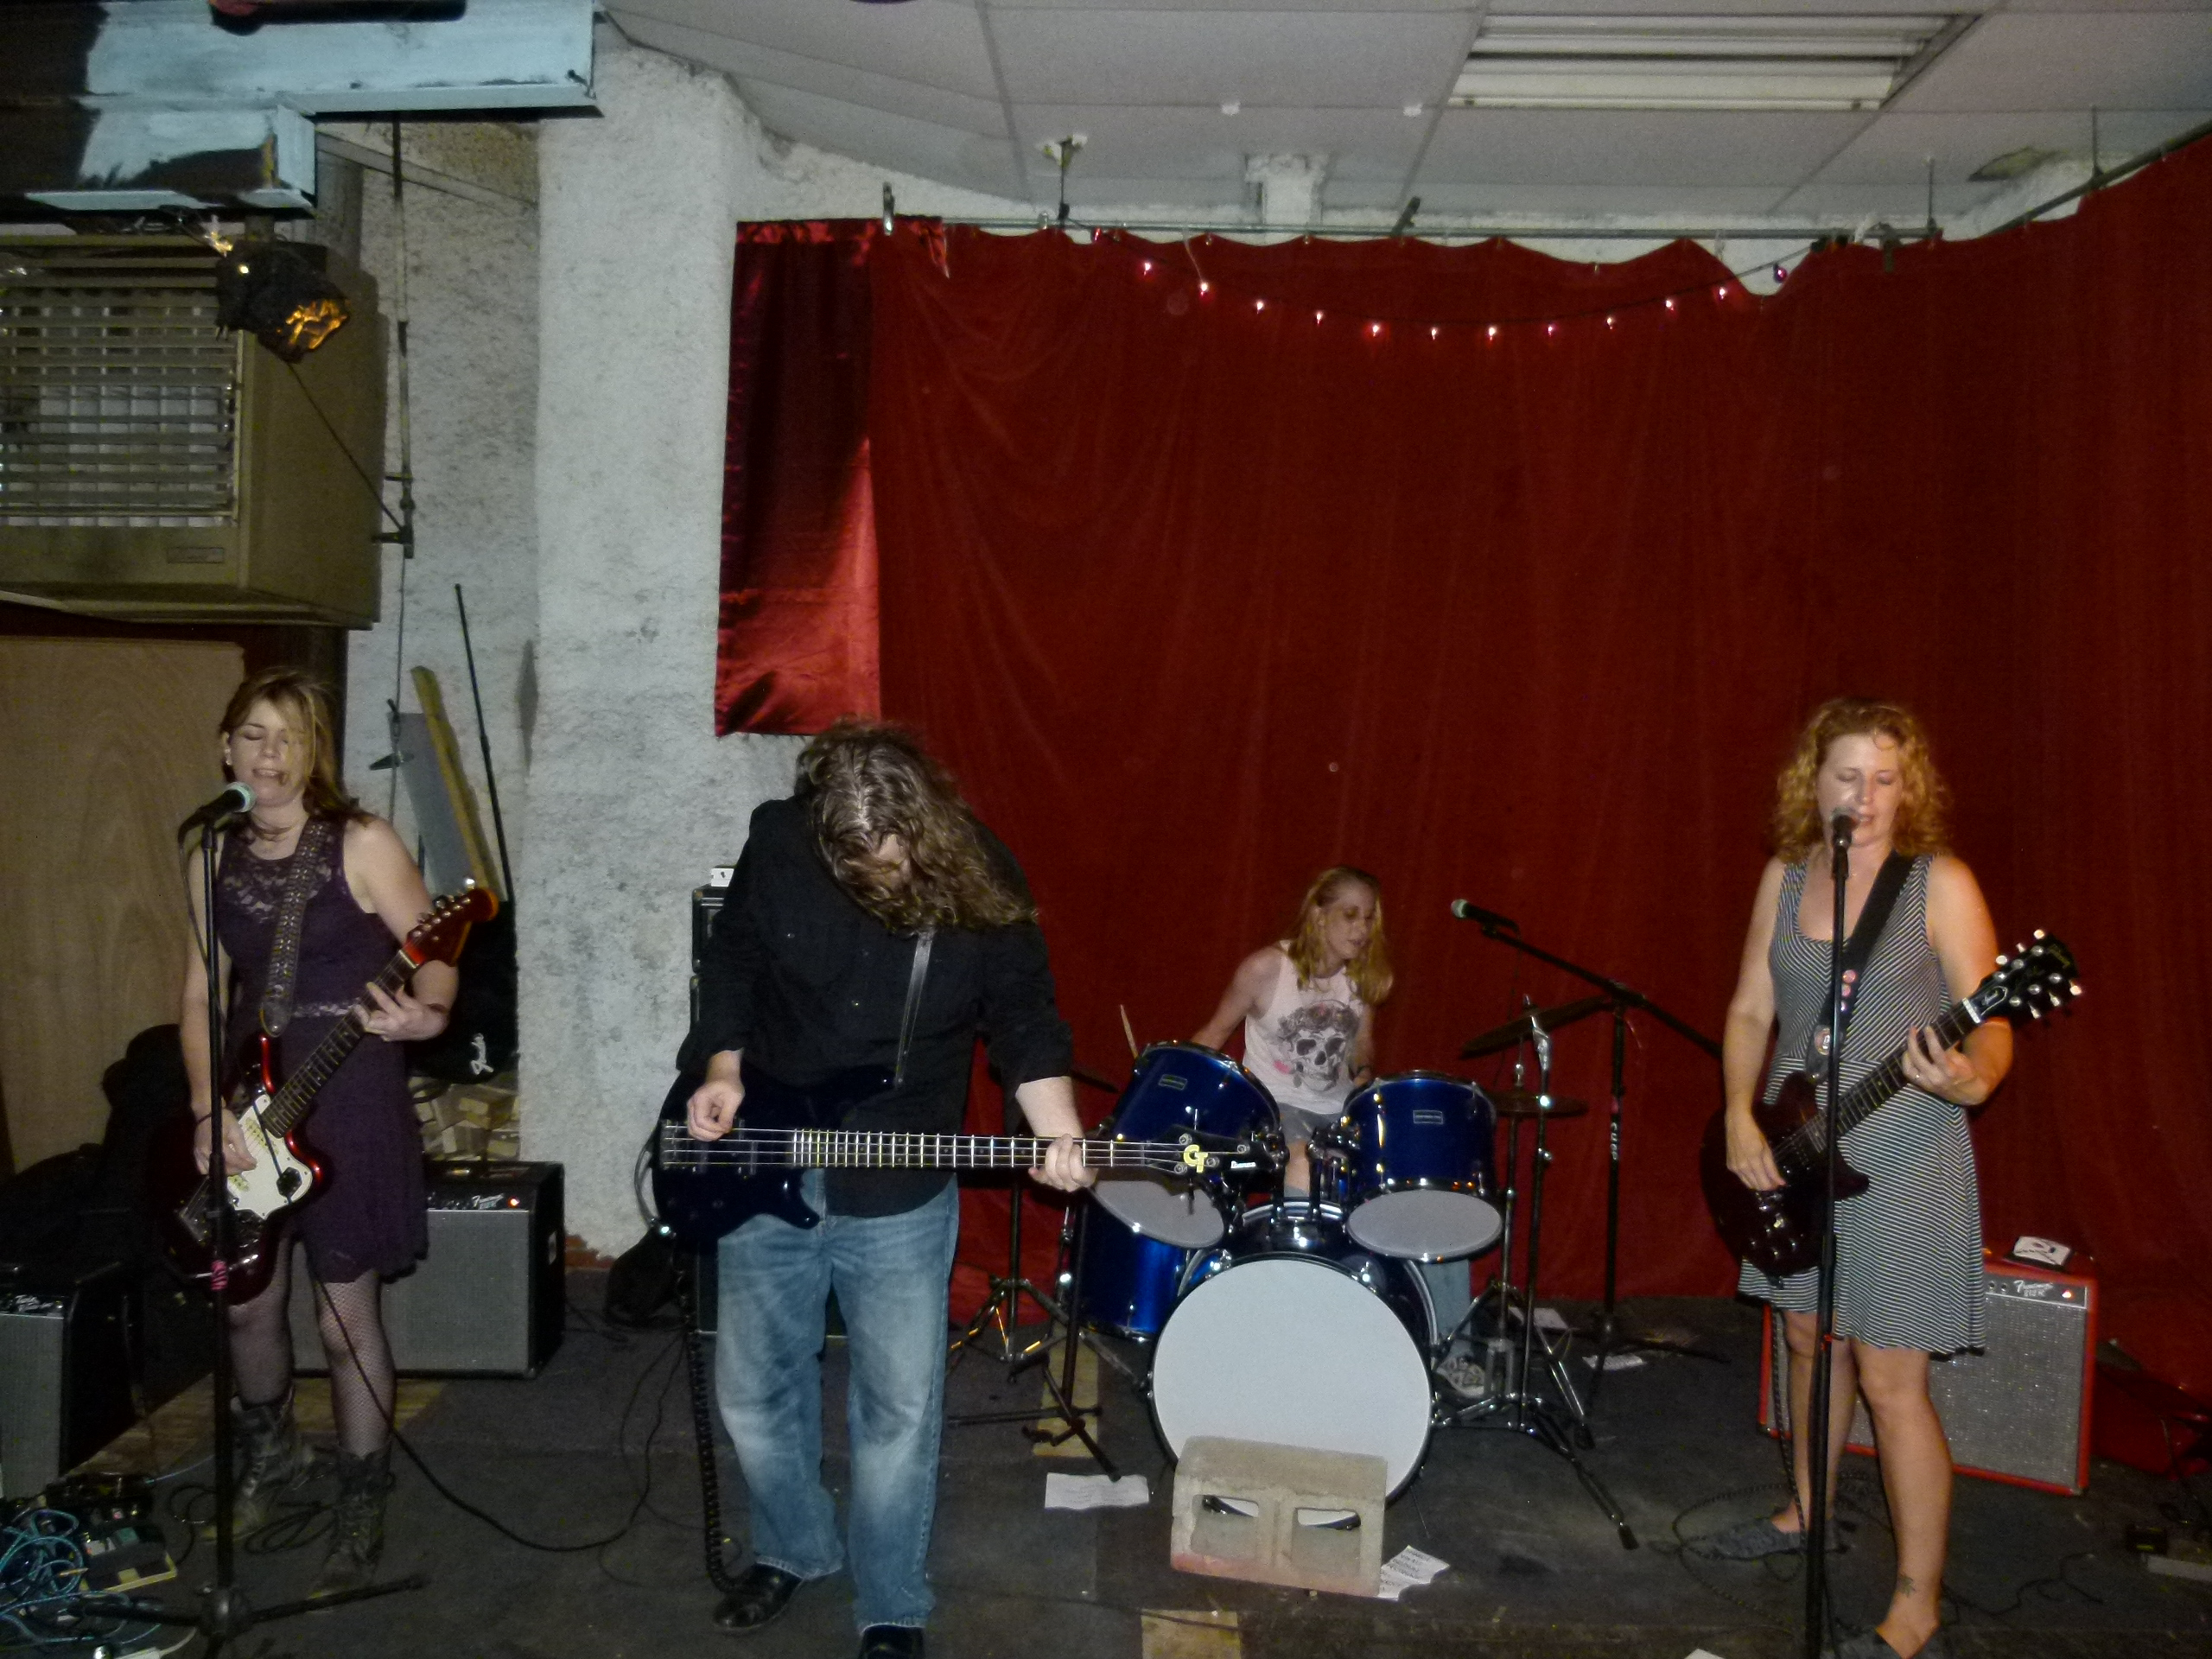 Murder For Girls, A Talented and Powerful Punk Rock Band. See Chris Maggios two part story that chronicles the band from rehearsal to festival performances.